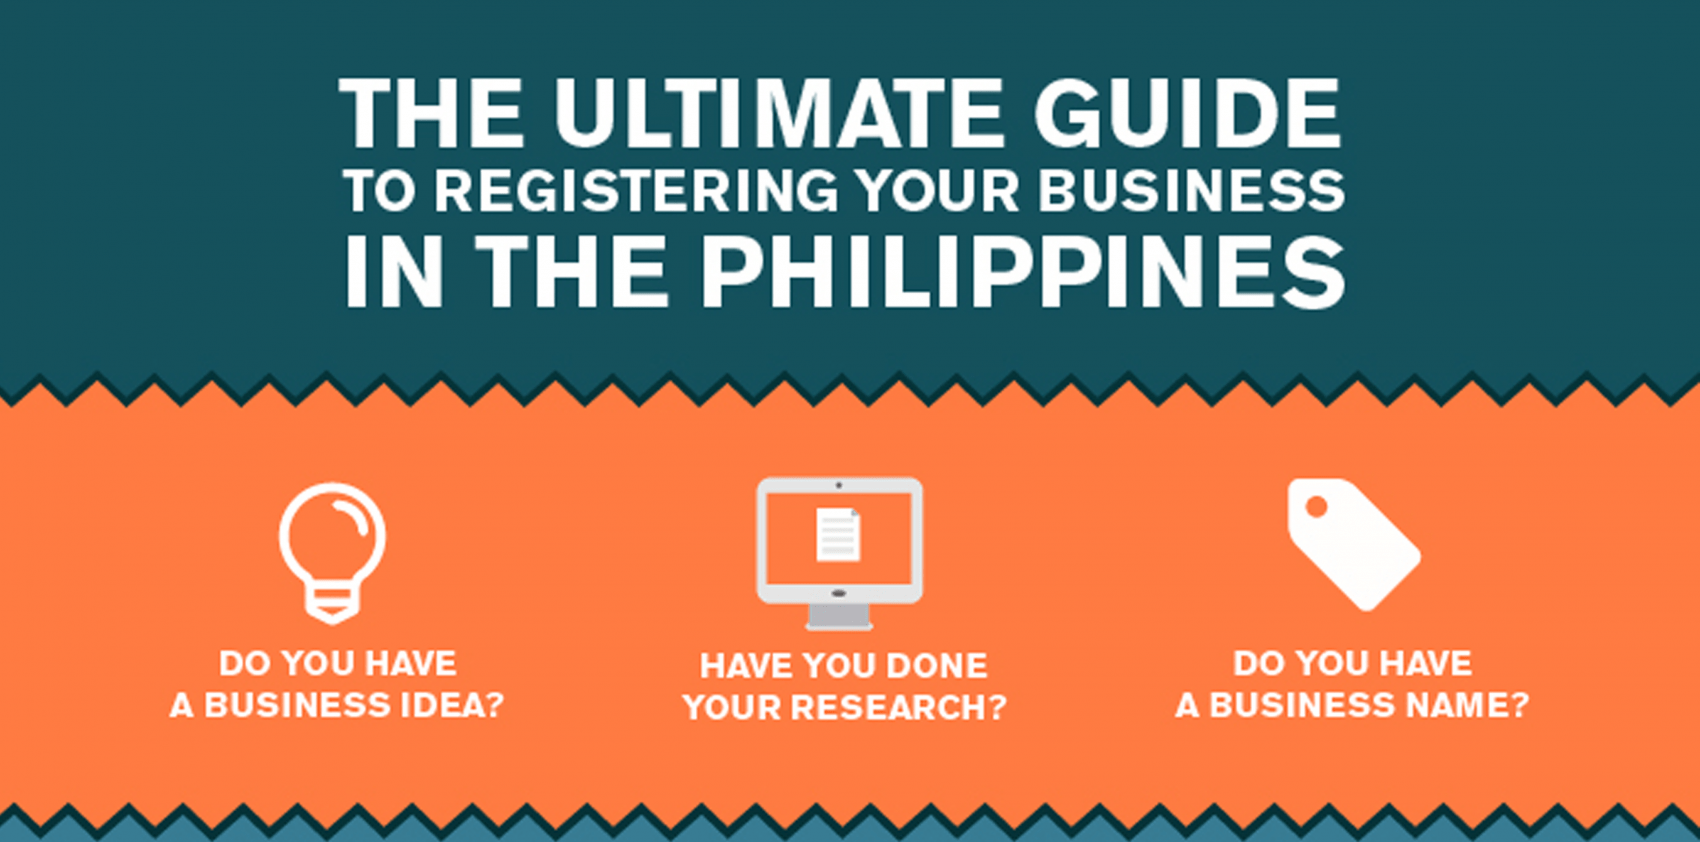 The Ultimate Guide to Registering Your Business in the Philippines